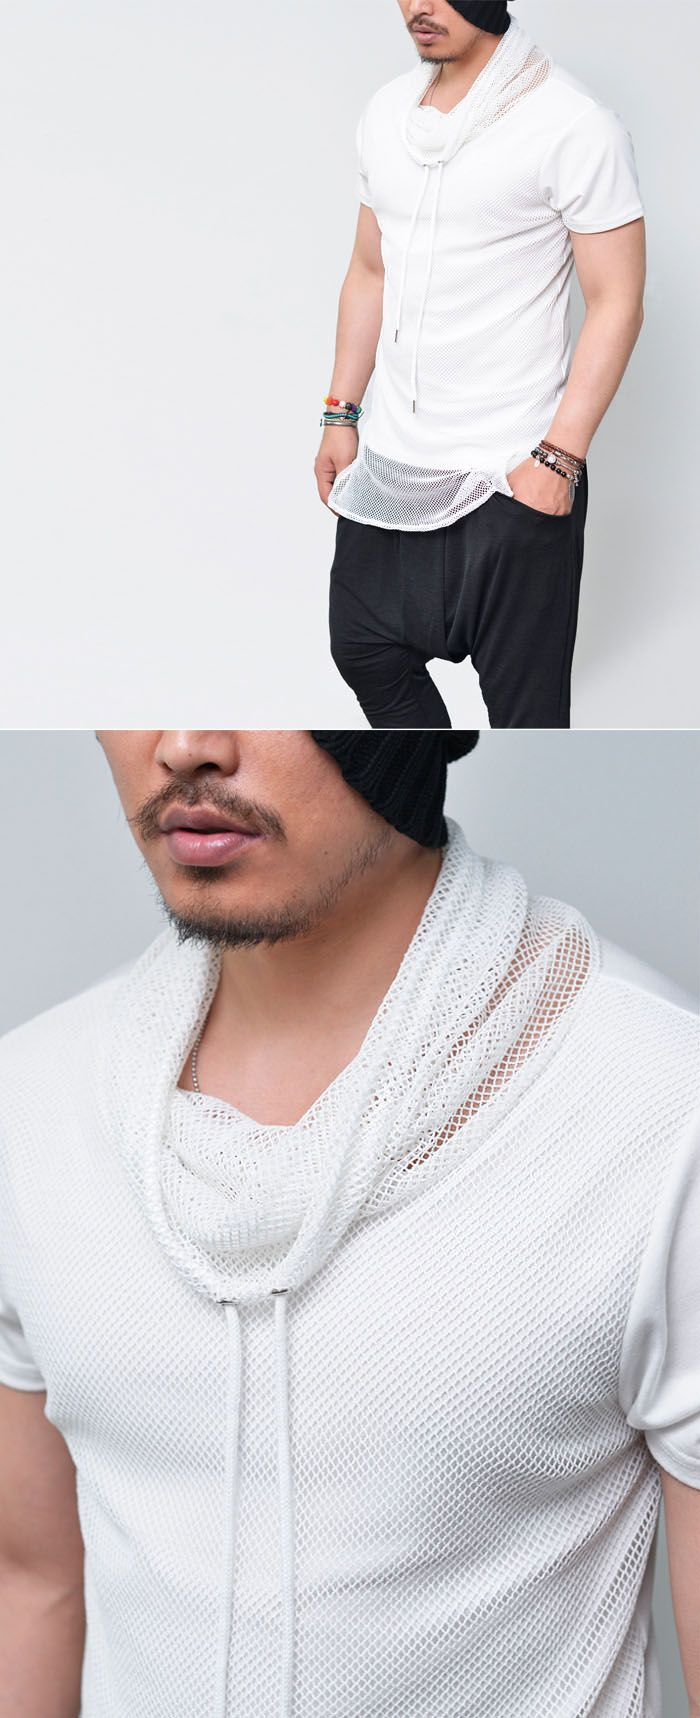 Tops :: Tees :: Mesh Turtle Layered Round-Tee 559 - Mens Fashion Clothing For An Attractive Guy Look